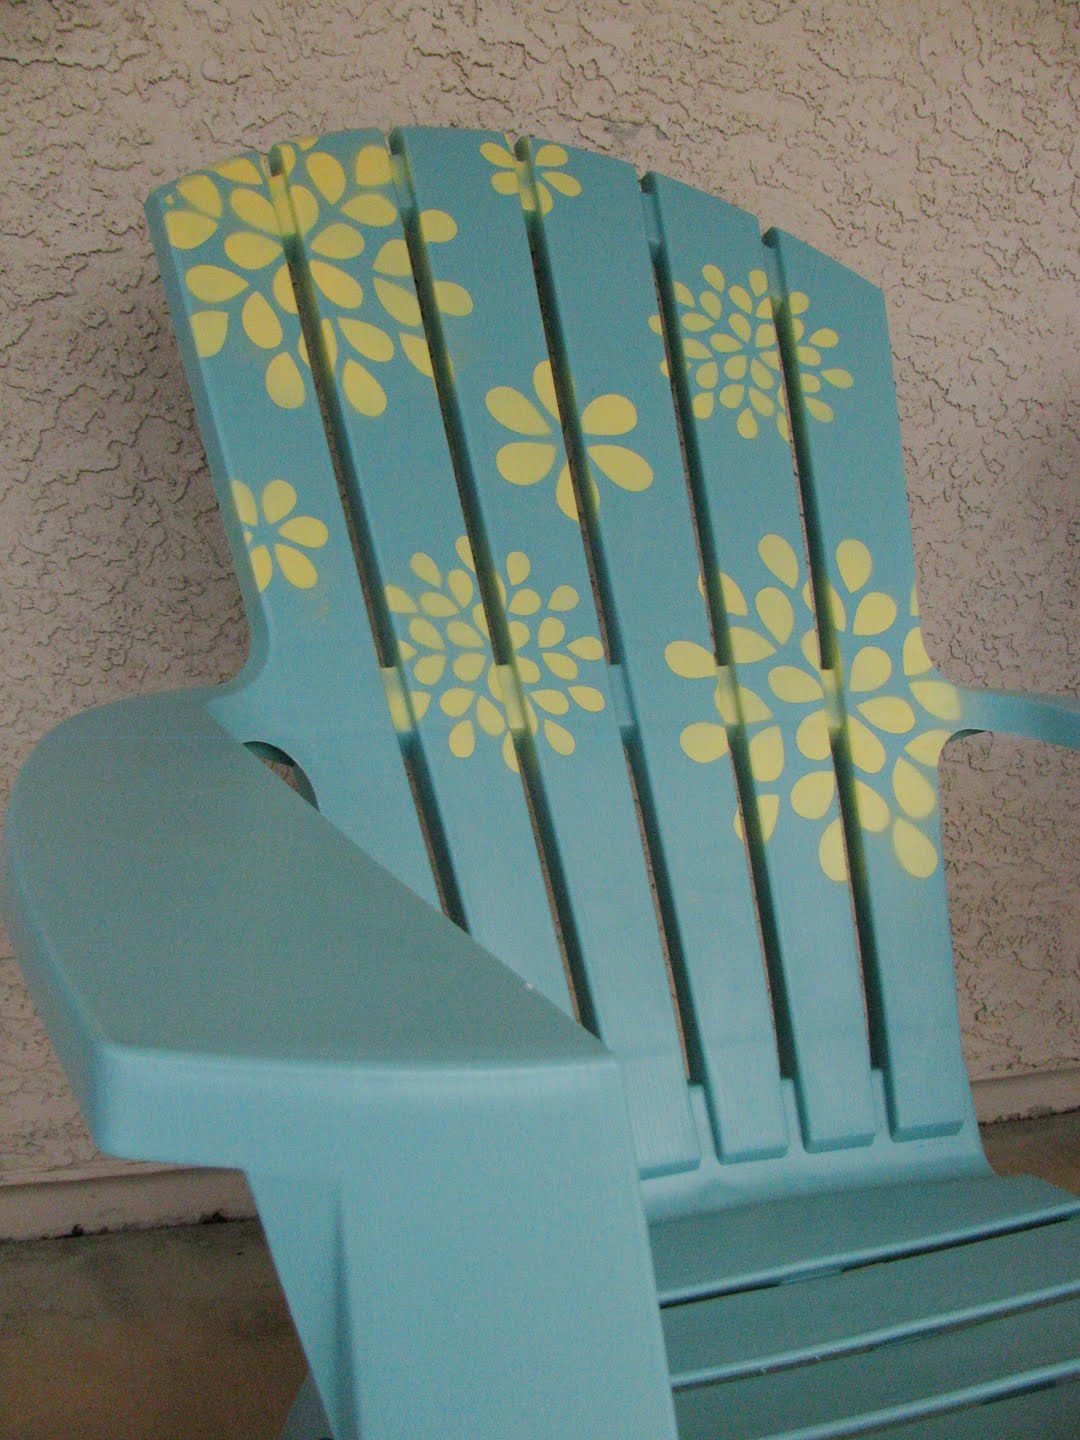 paint for adirondack chairs design within reach womb chair cactus and olive stencil tutorial